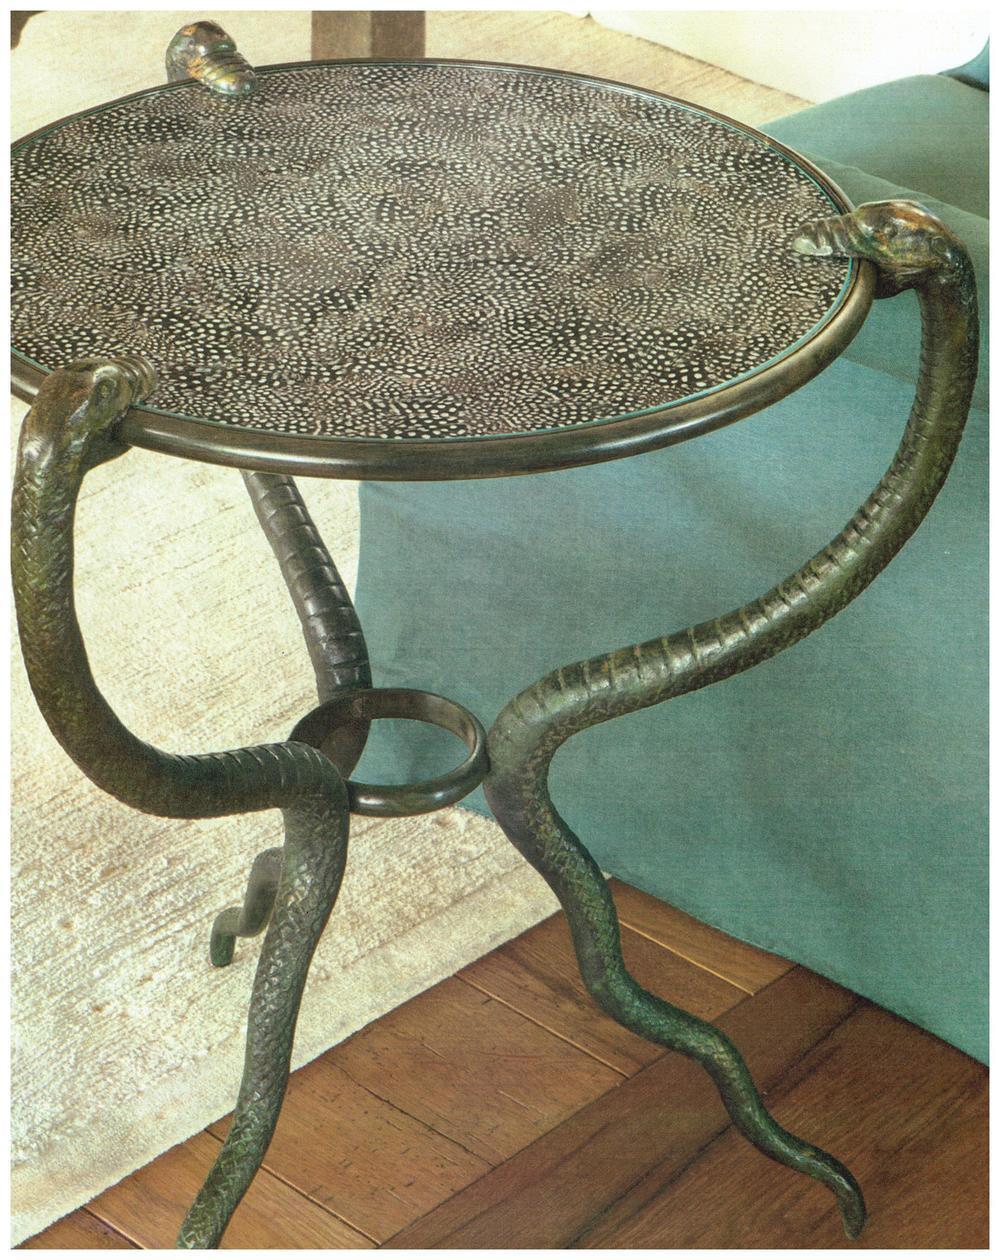 Rose Tarlow snake side table with guinea fowl feathers under glass top.